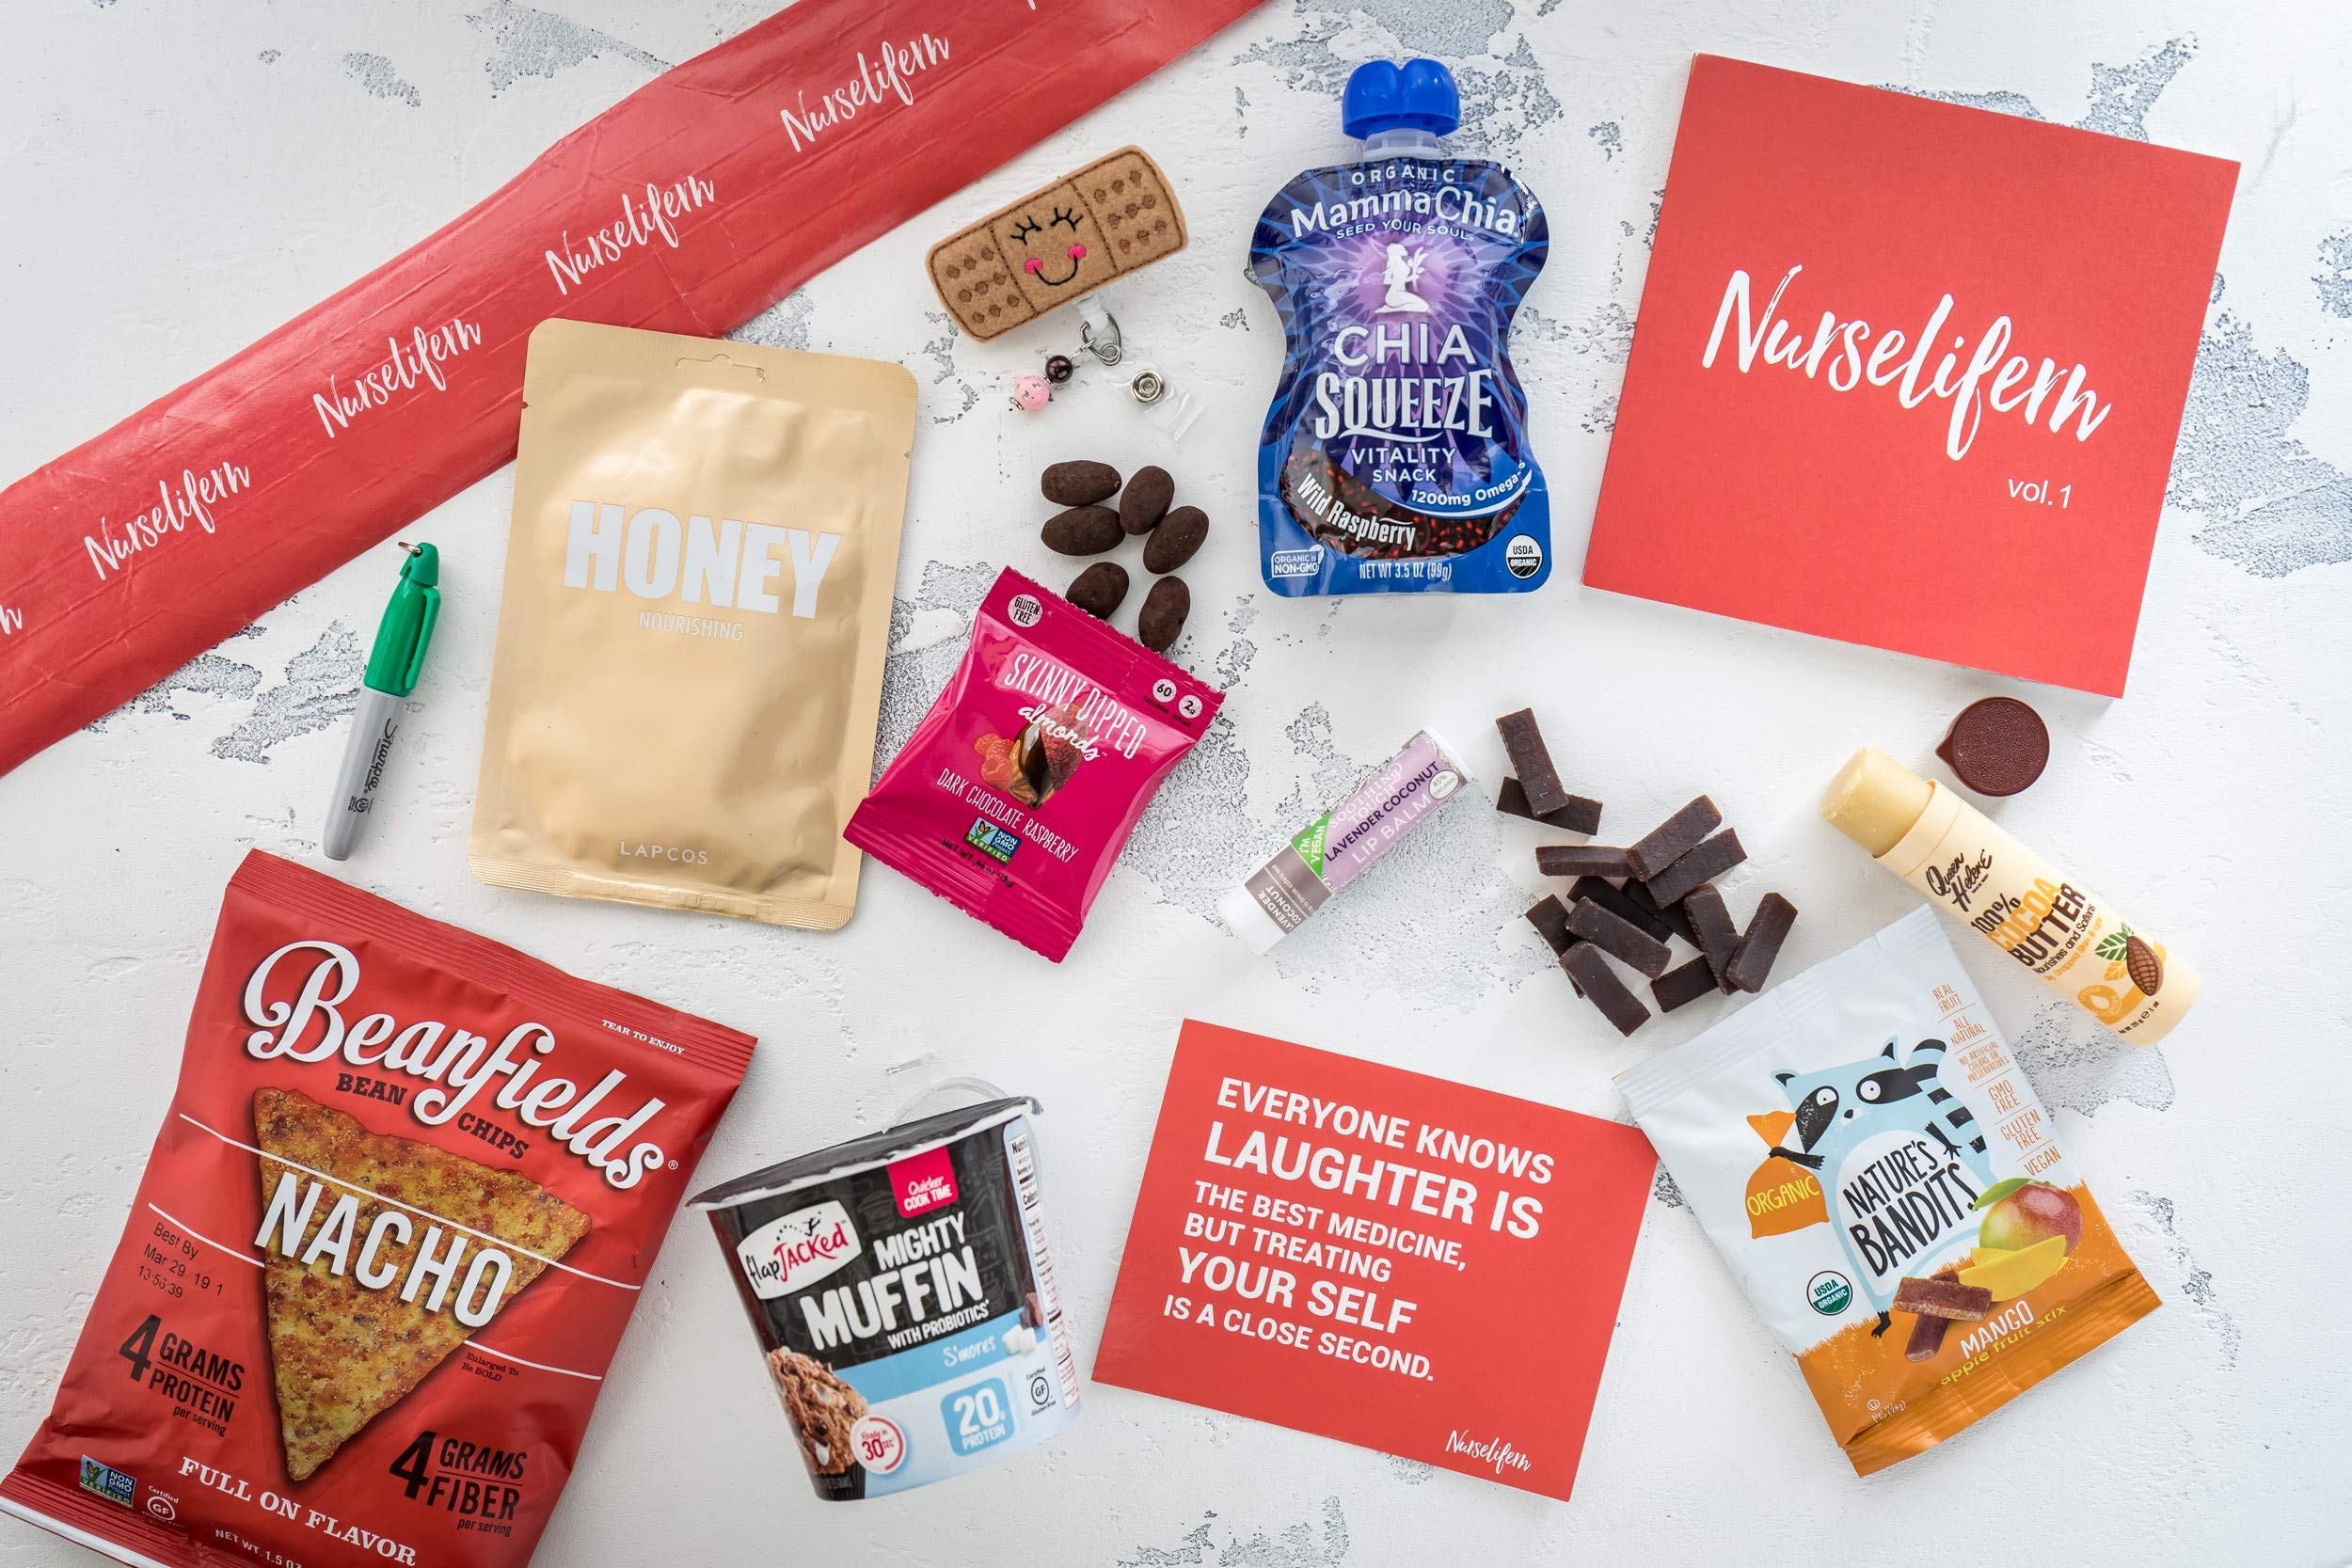 Nurse Essentials Gift Box: Nurse Badge Healthy Snacks Self Care Nurse Gift Must Haves All In One By Nurselifern by BUNNY · JAMES · (Image #3)